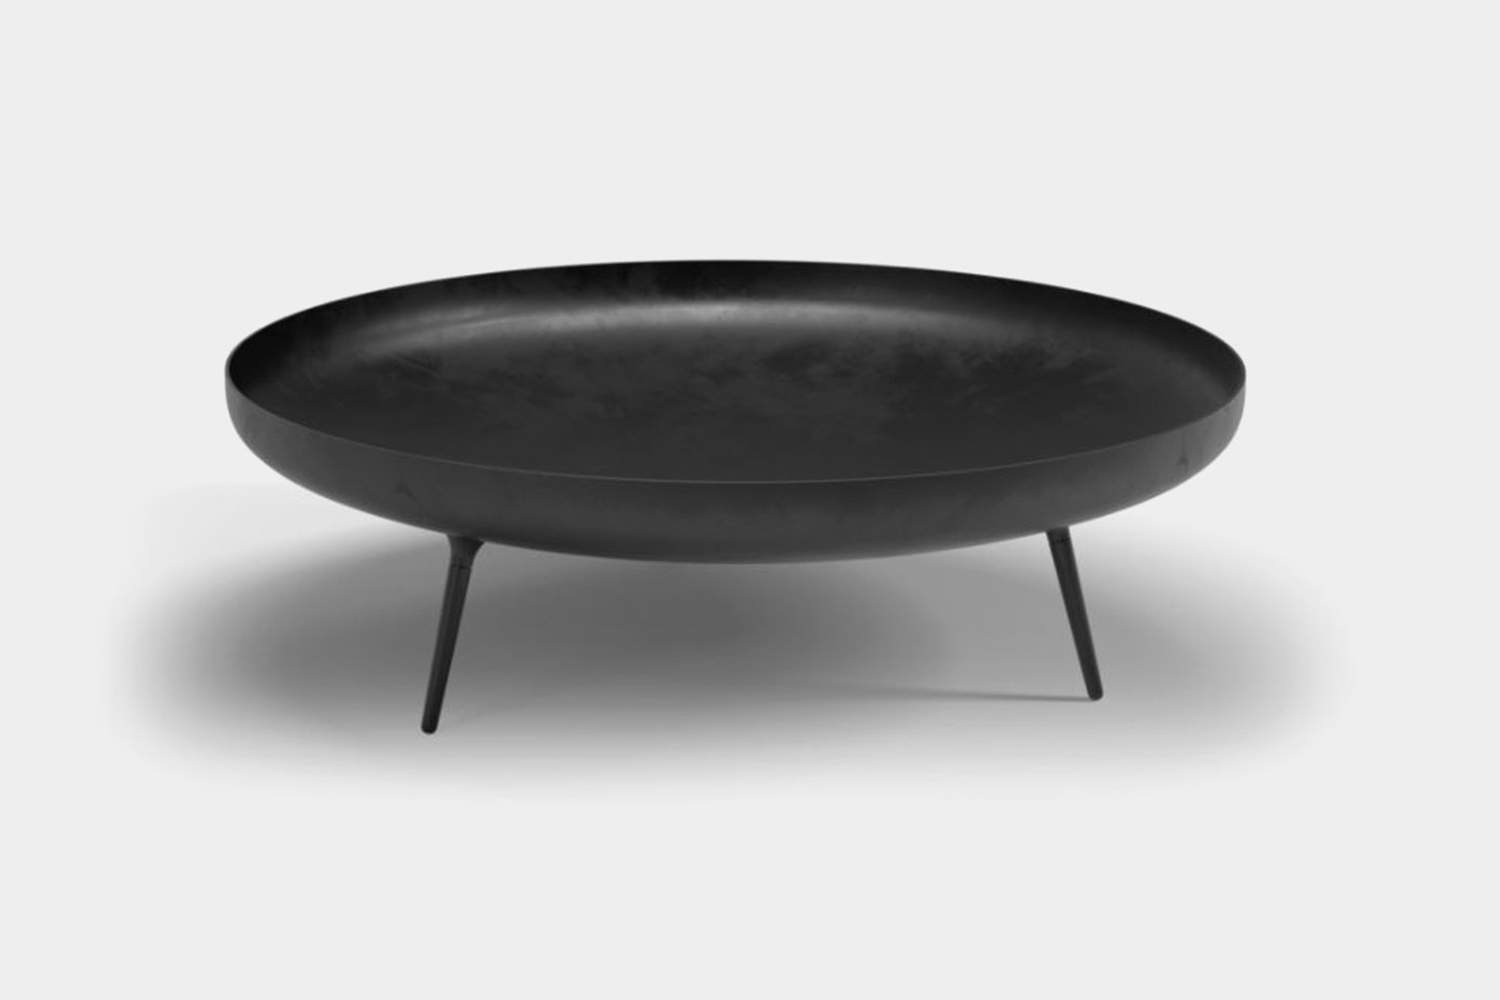 Deco Fire Bowl from Design Within Reach